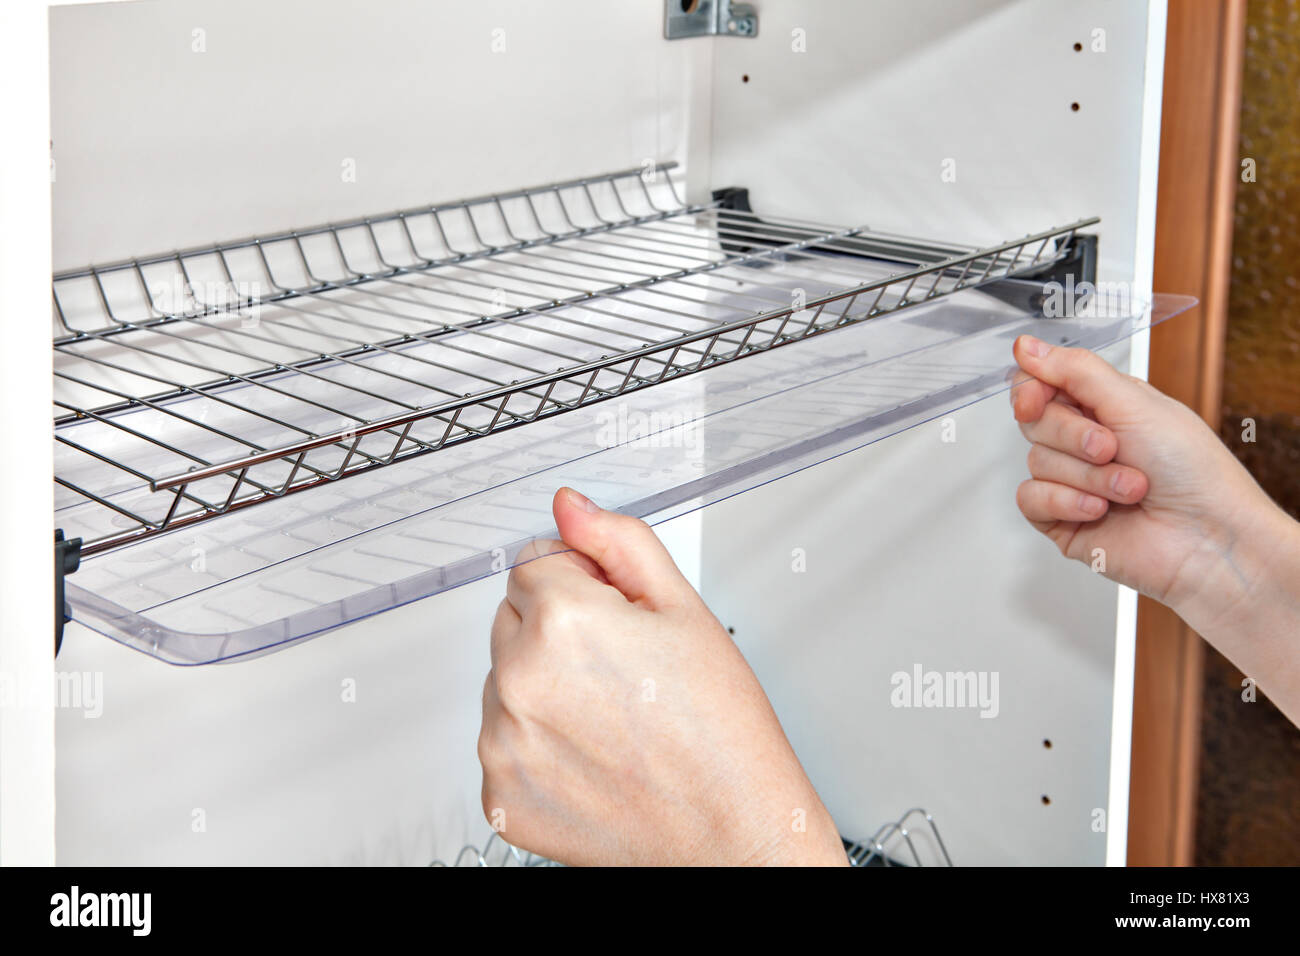 Installing shelf under kitchen cupboard with inside wire plate rack close-up of a woman hands holds drip tray. & Installing shelf under kitchen cupboard with inside wire plate rack ...